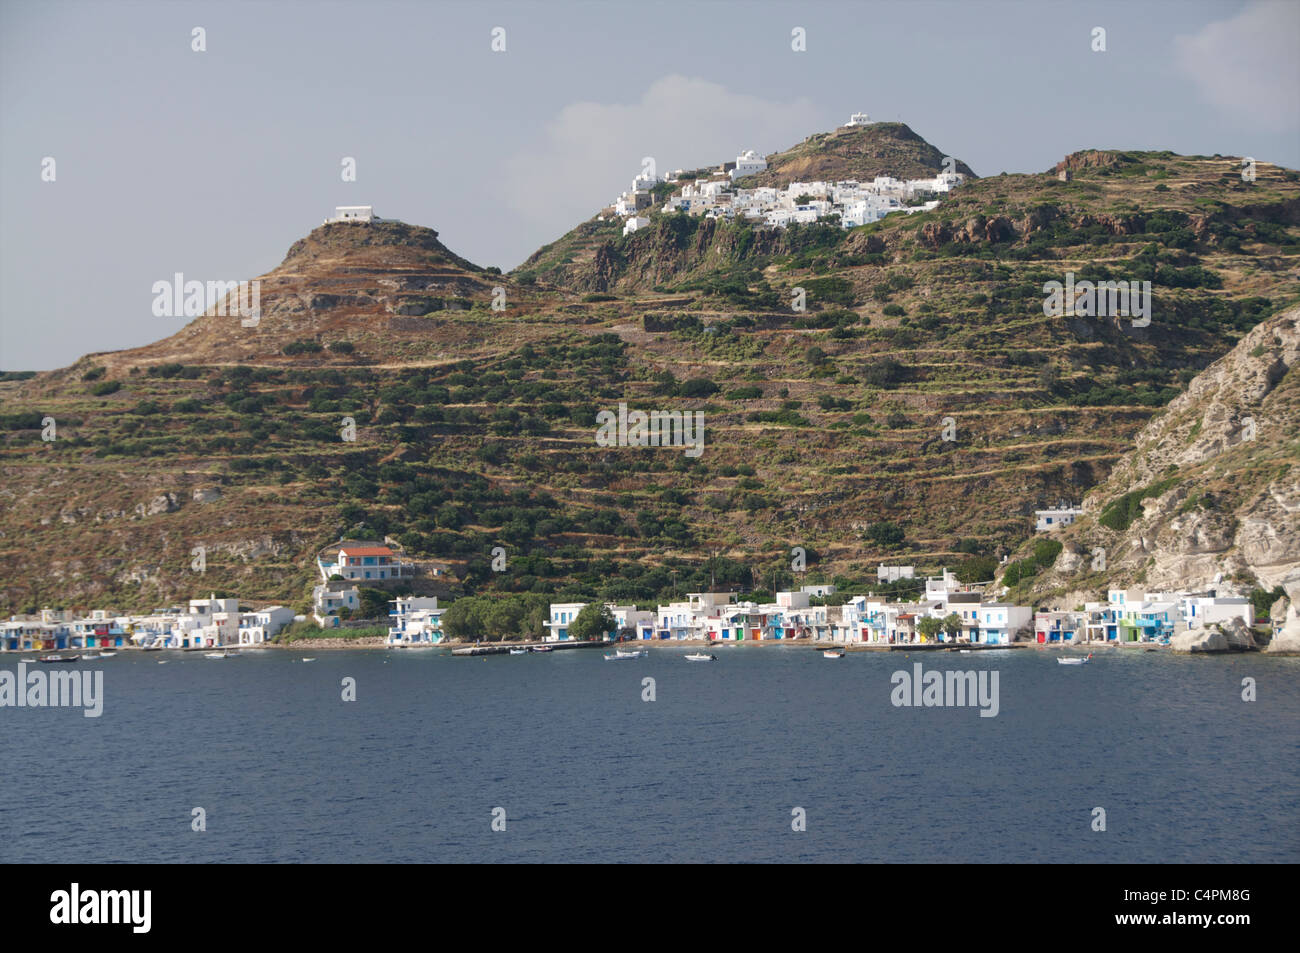 Fishing village Klima with Plaka and Kastro above on the Cycladic Island of Milos in Greece - Stock Image